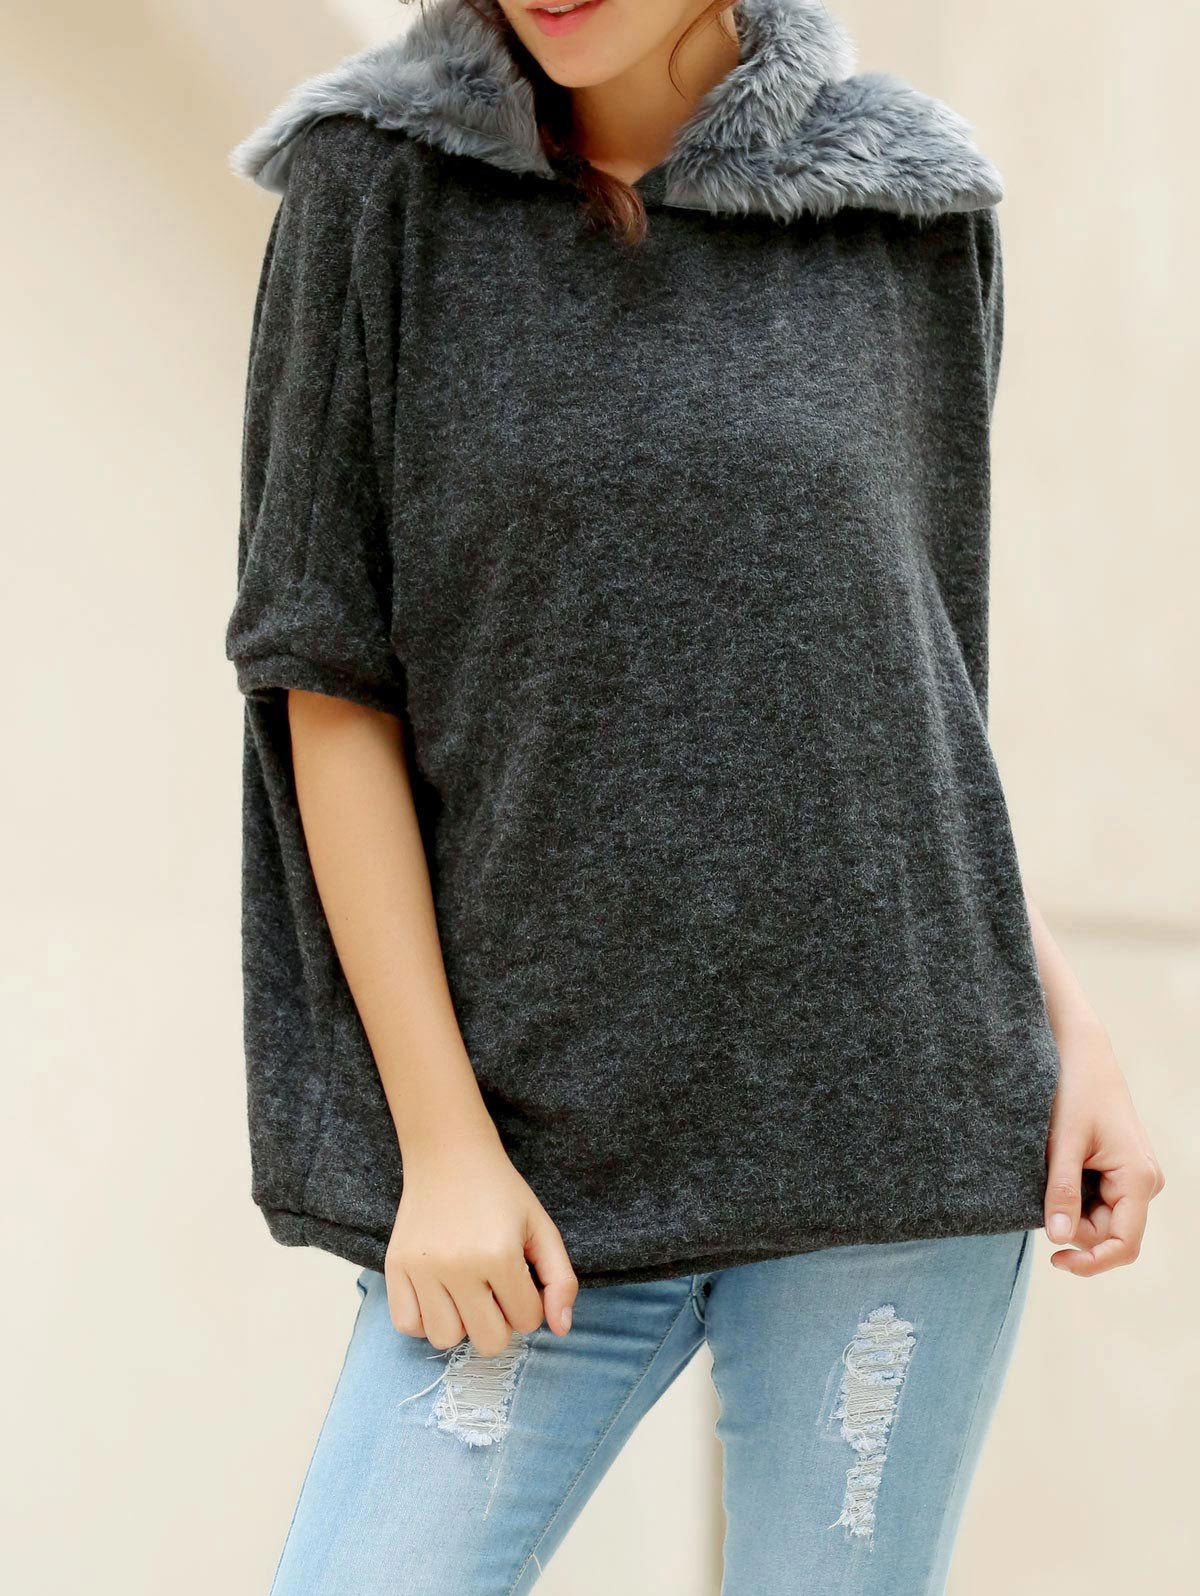 Fashionable Turtle Neck With Fur Loose-Fitting Batwing Sleeve Sweater For Women